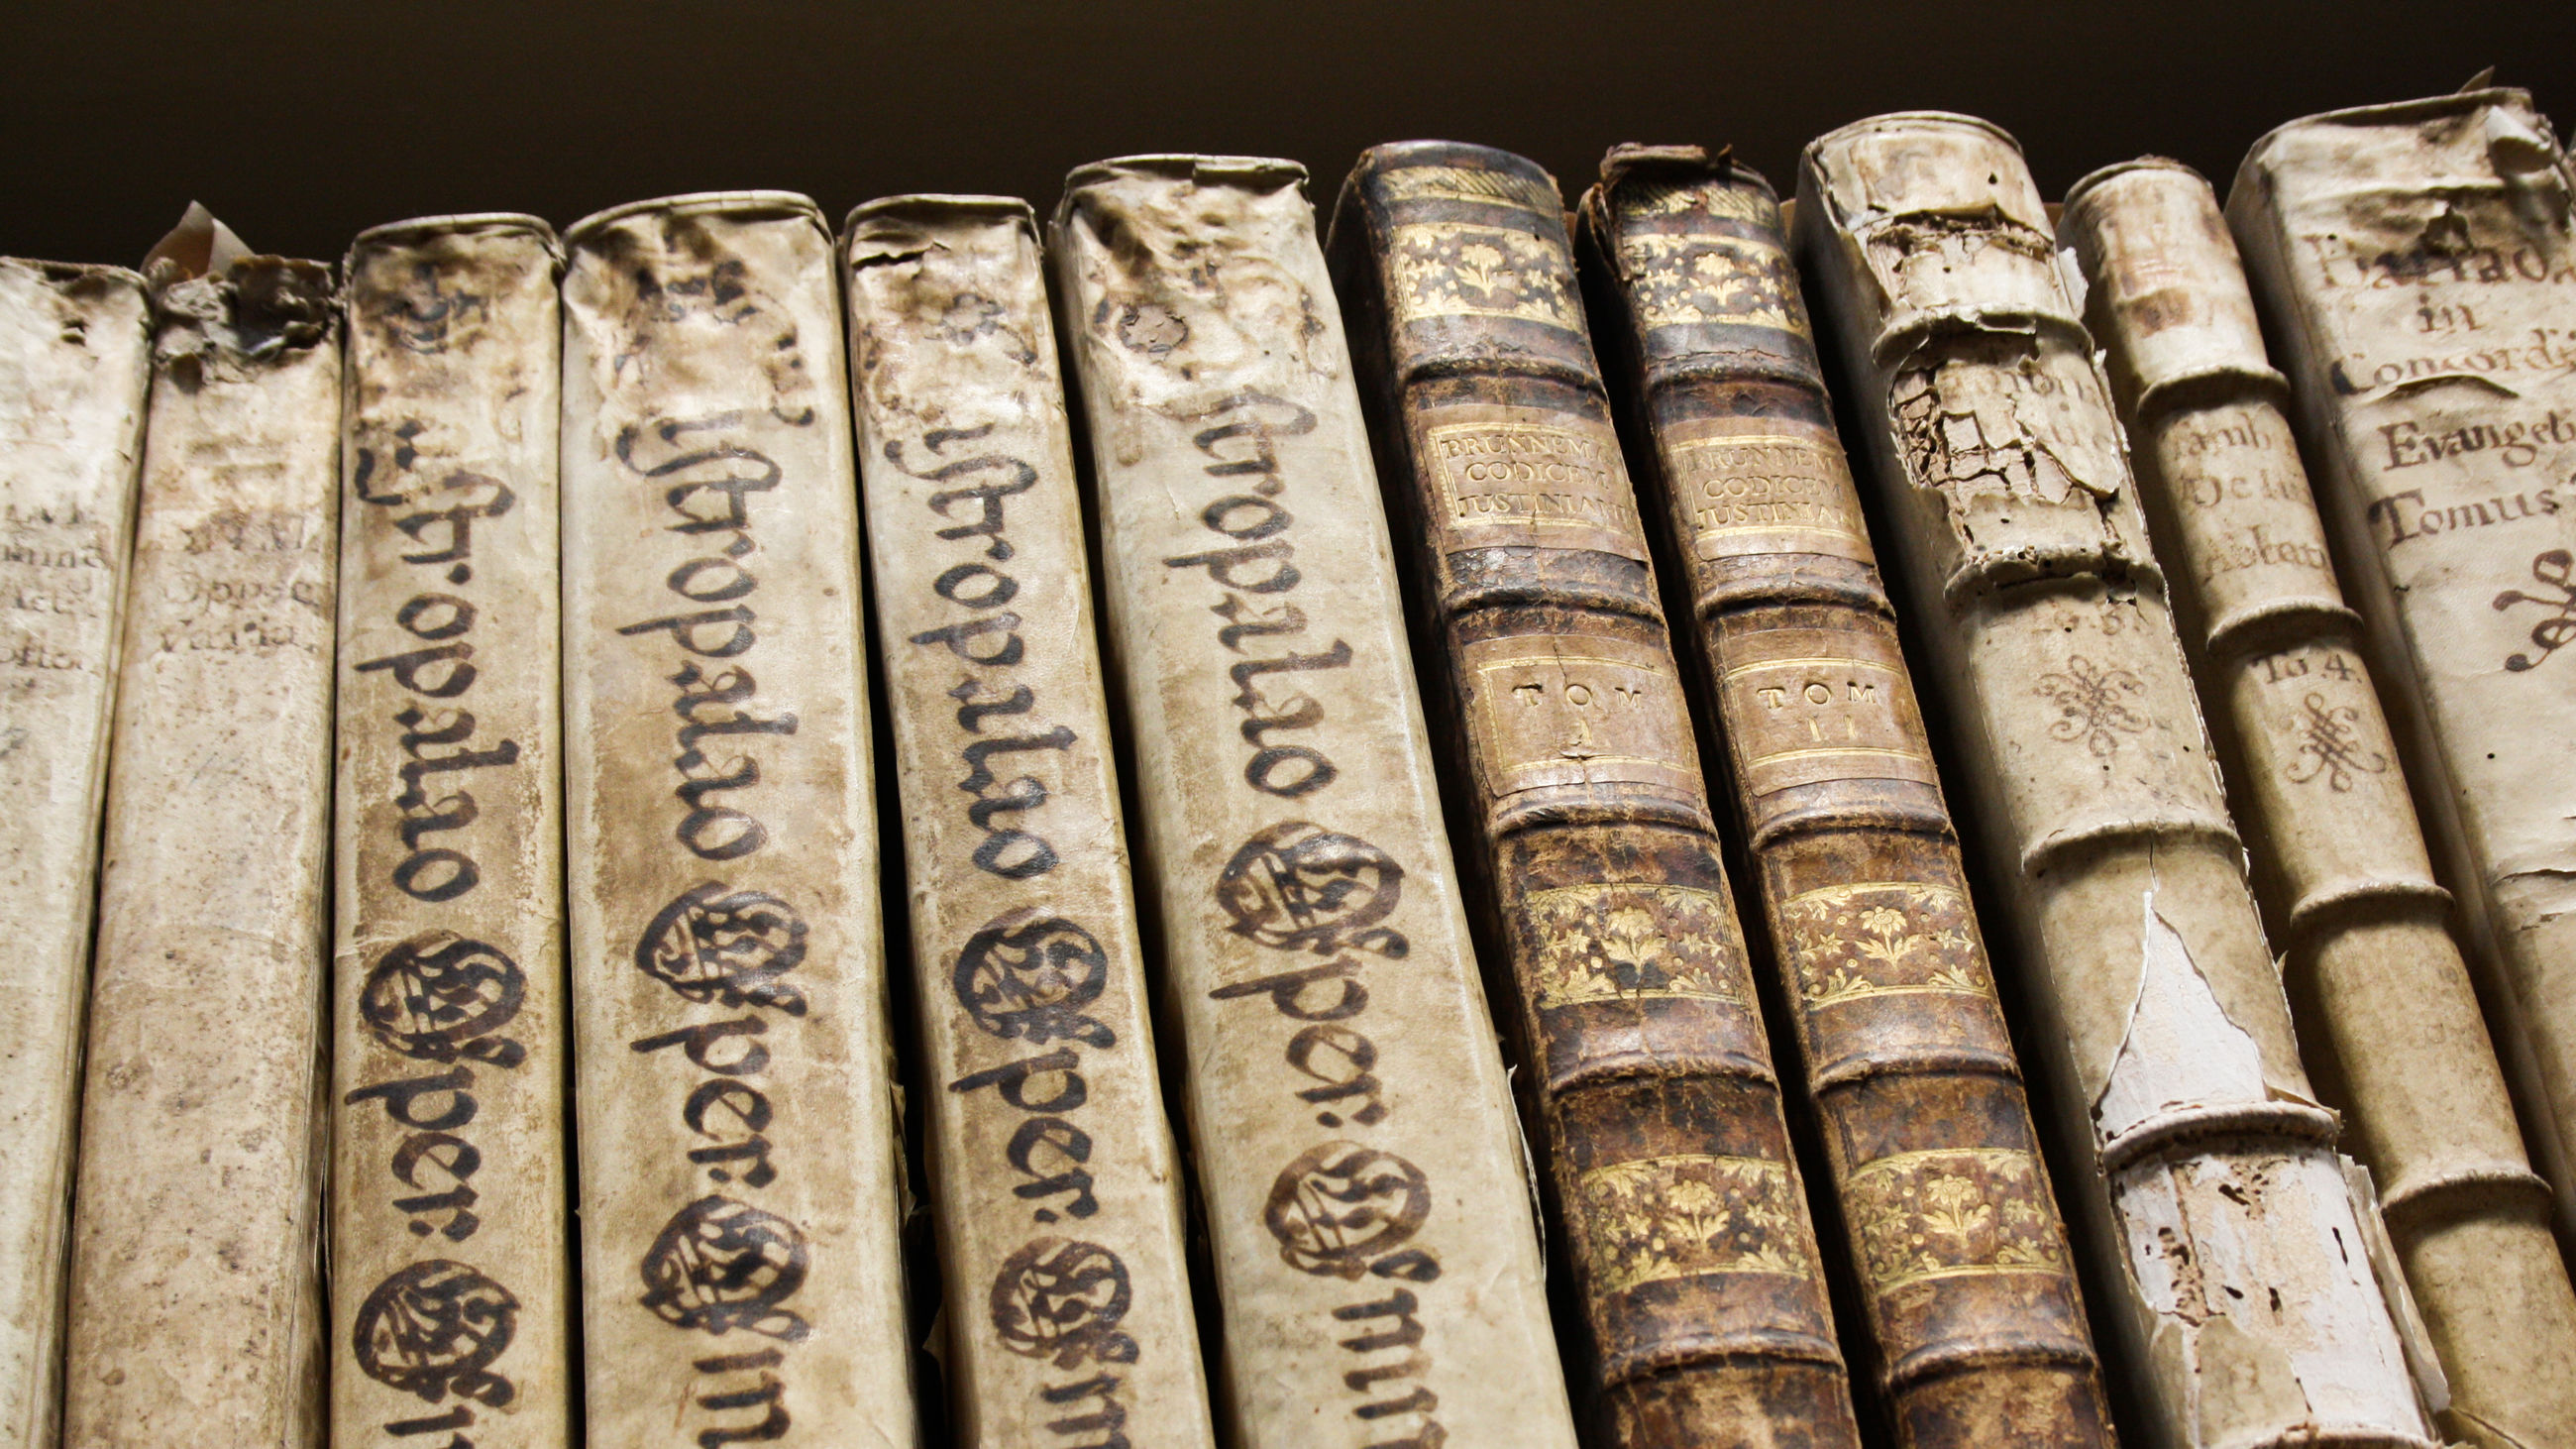 Old book spines